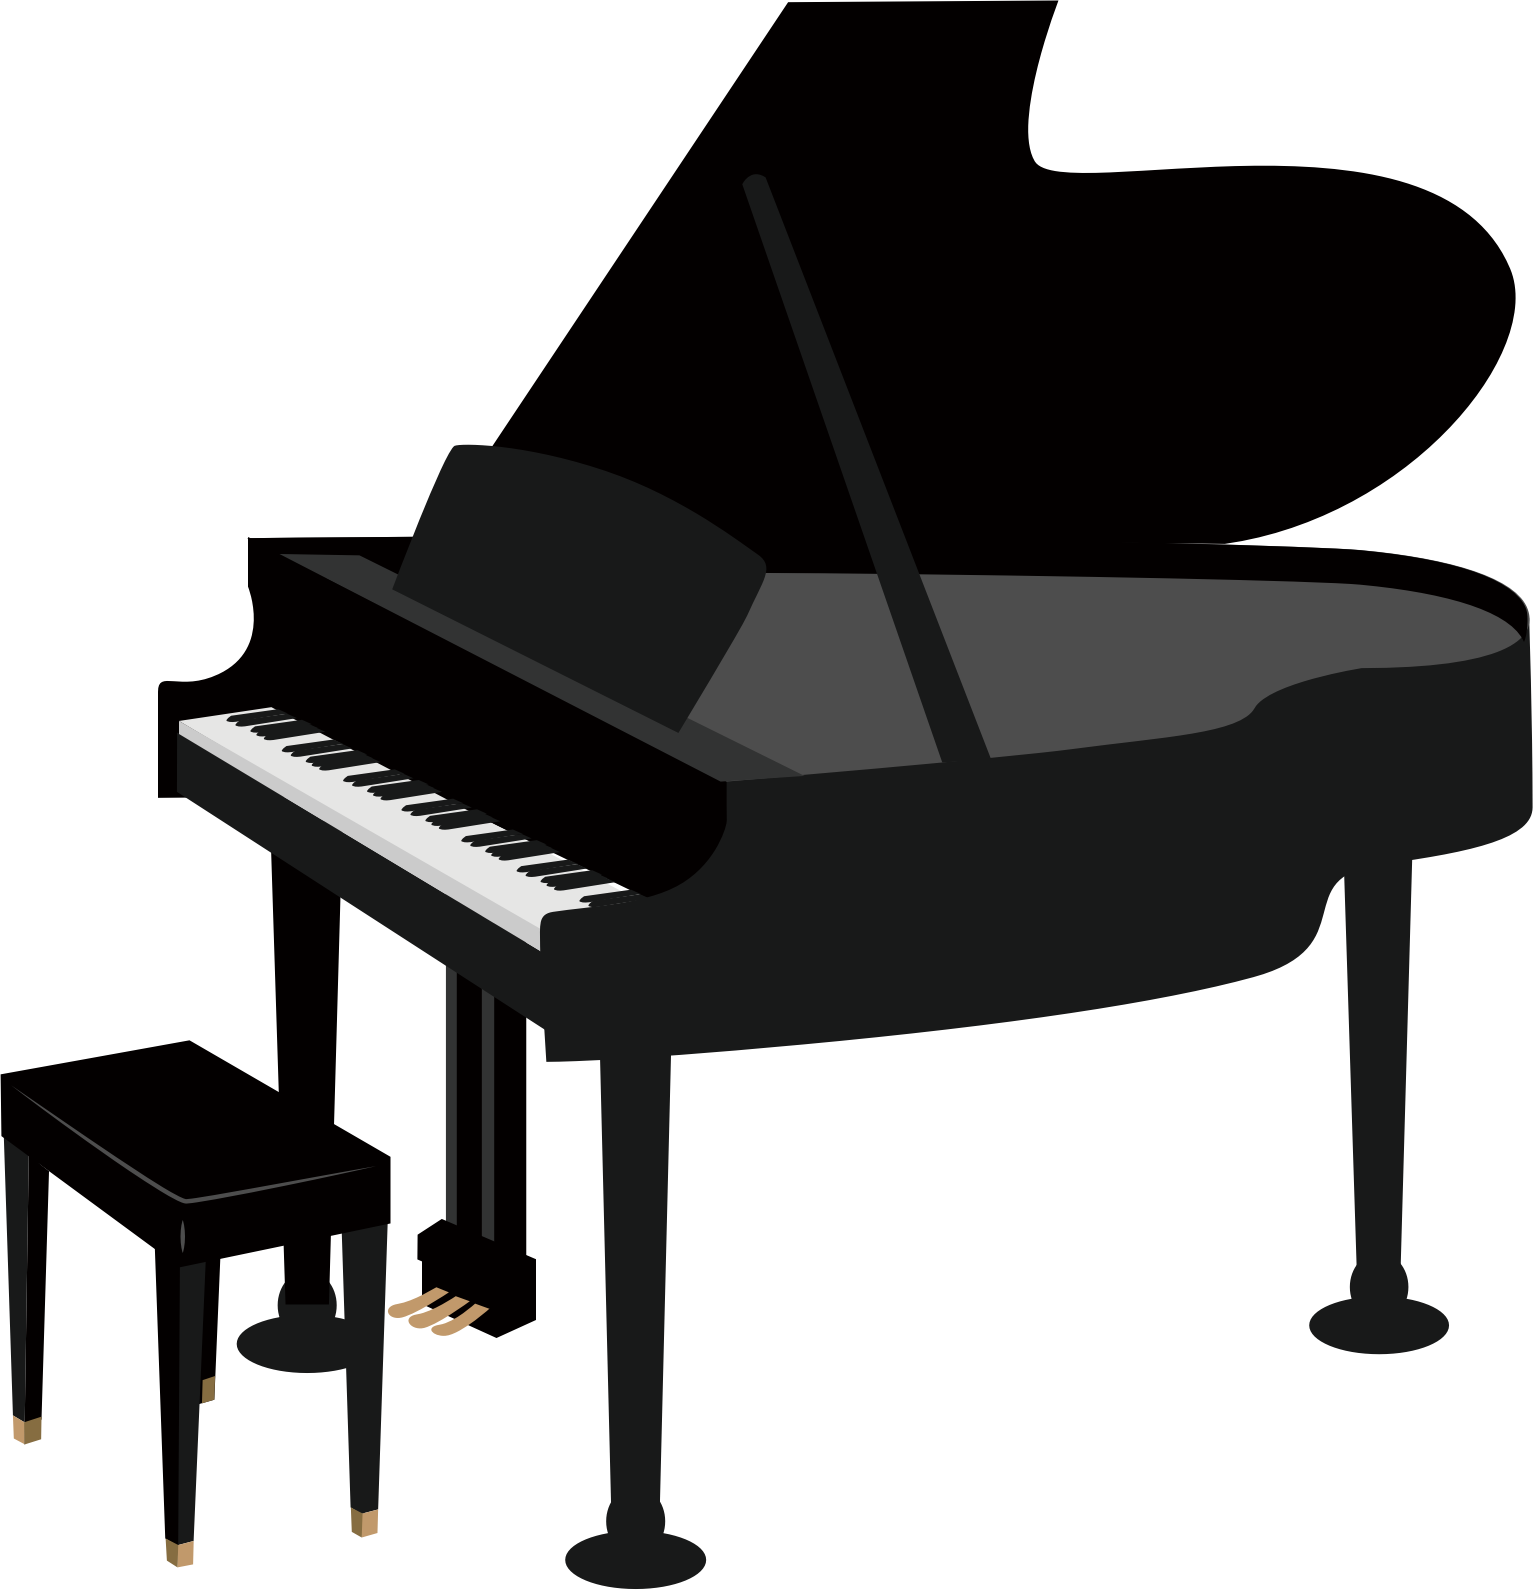 Clipart grand piano image. Transparent pianos big png freeuse library